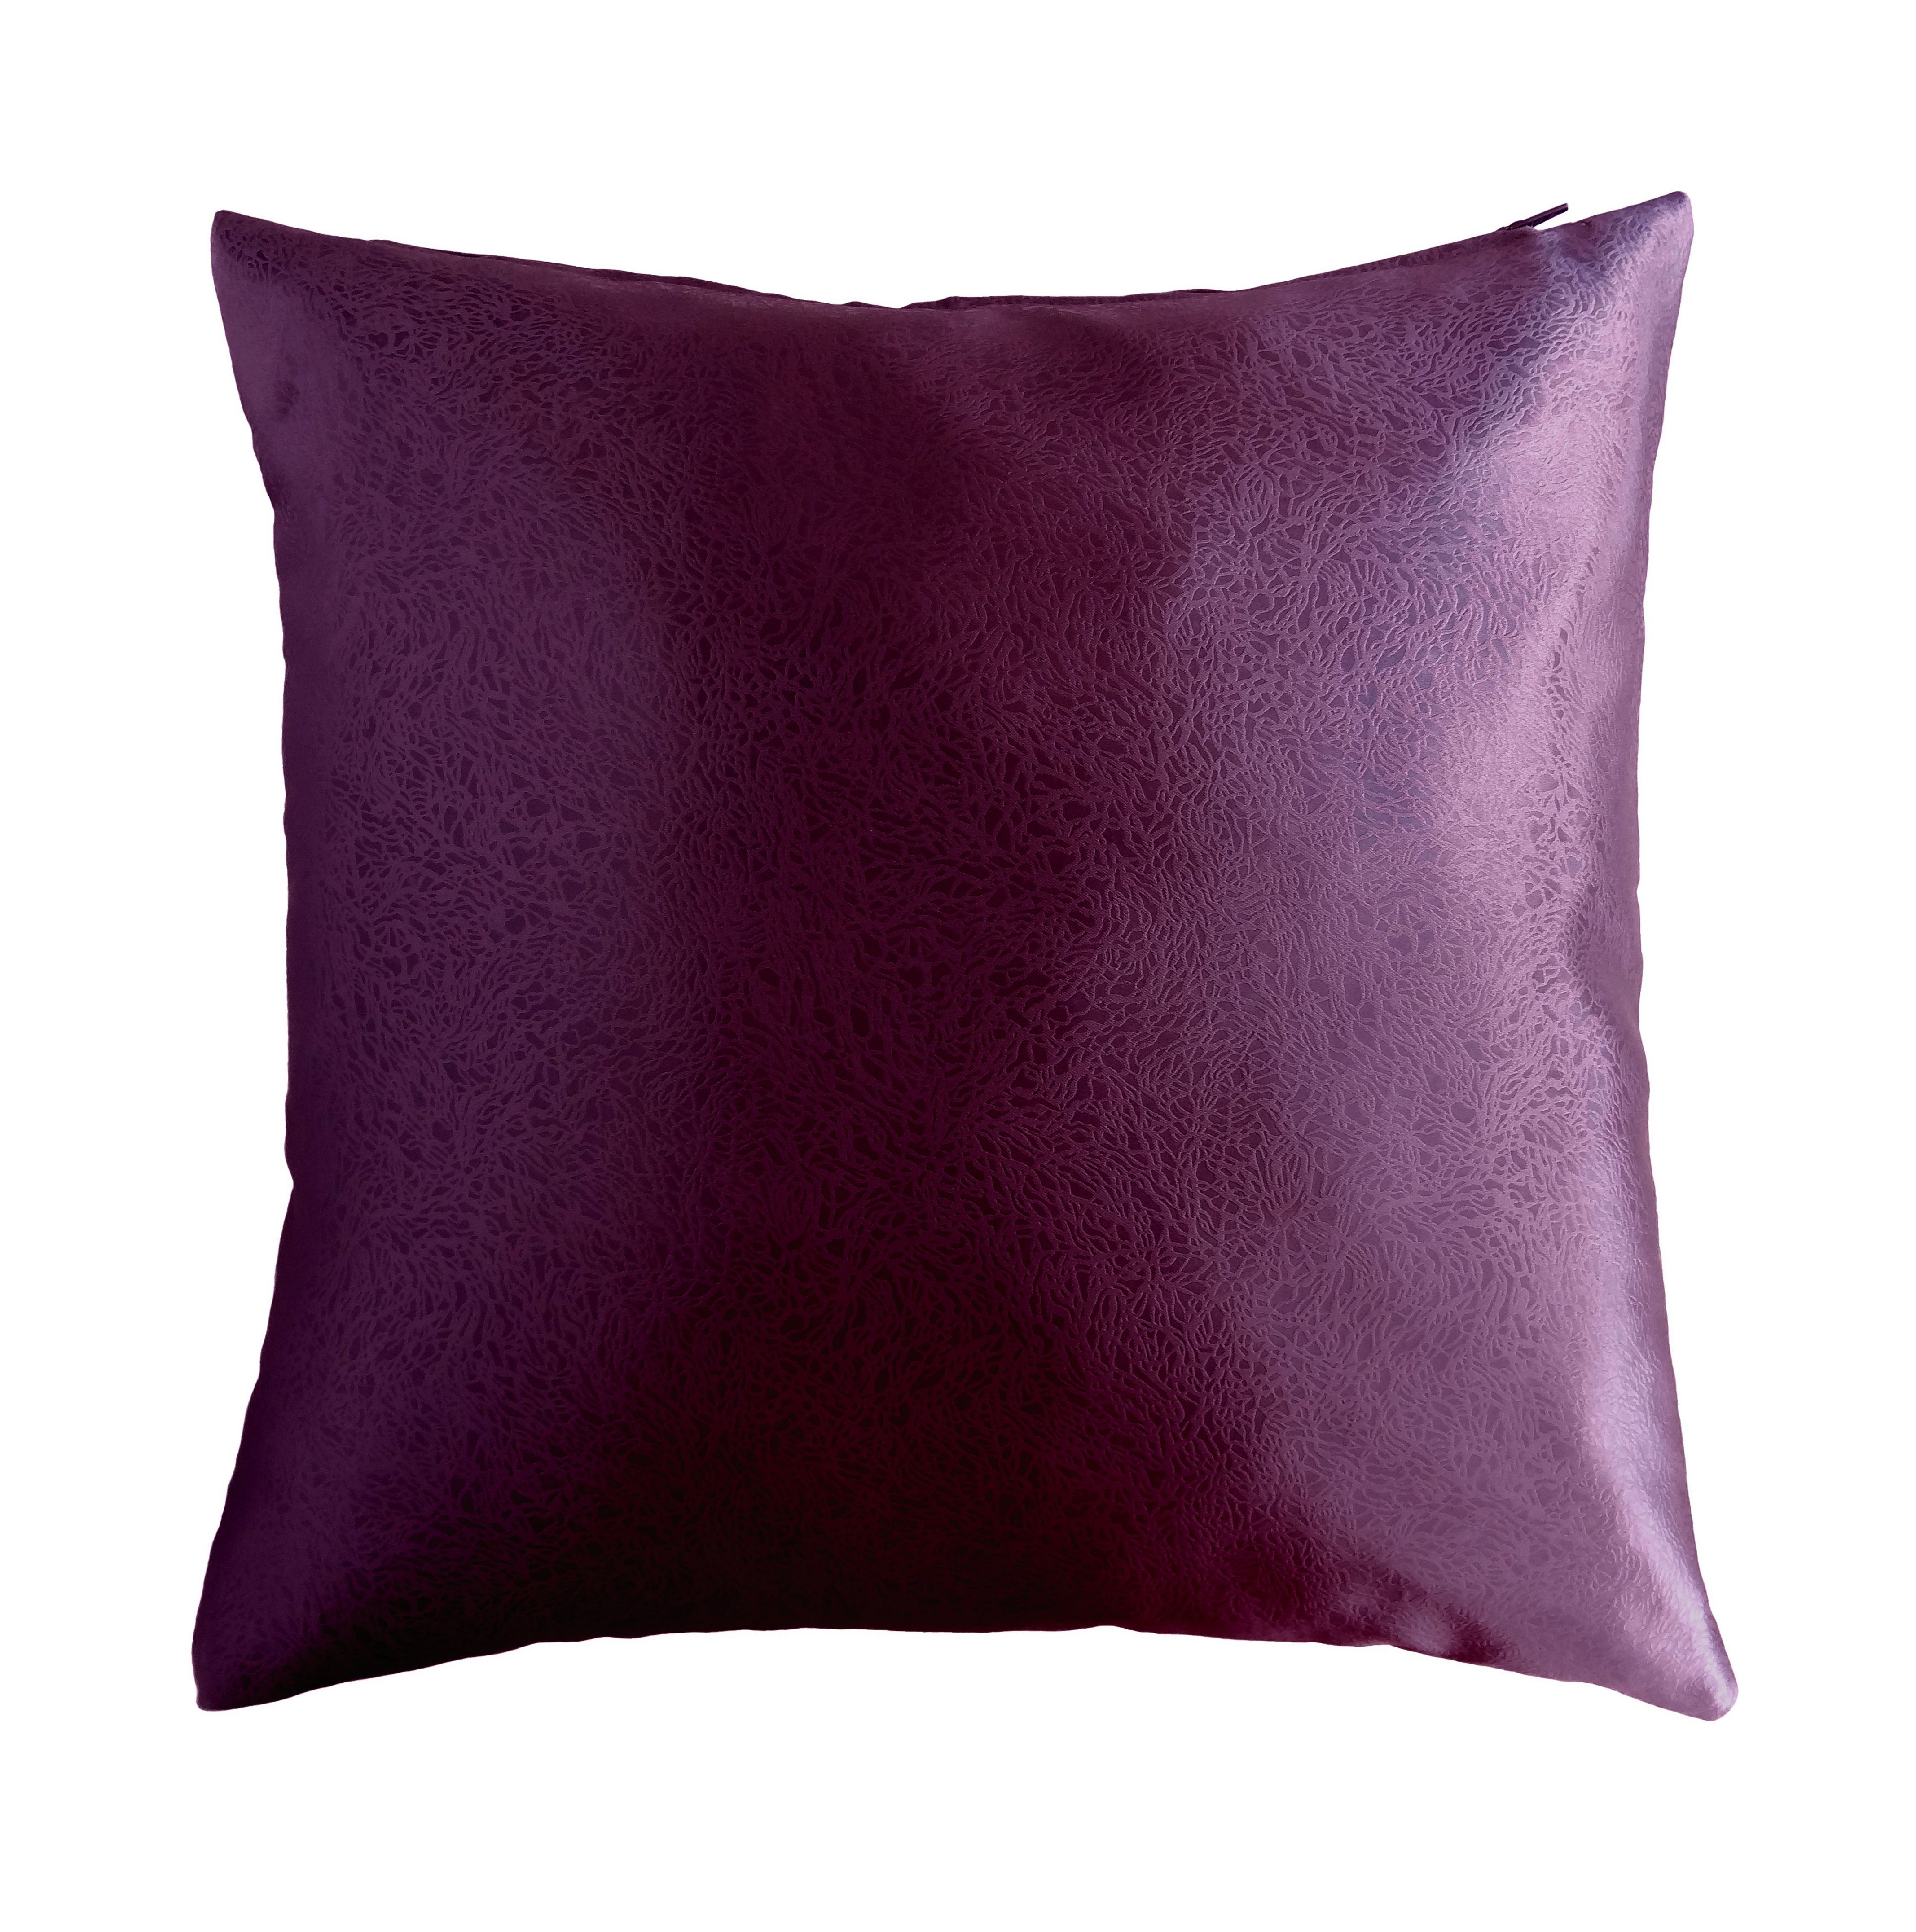 blanket cushion pillowcase egyptian luxury gallery tc collection case cotton pillow hotel oxford cases square cream pair